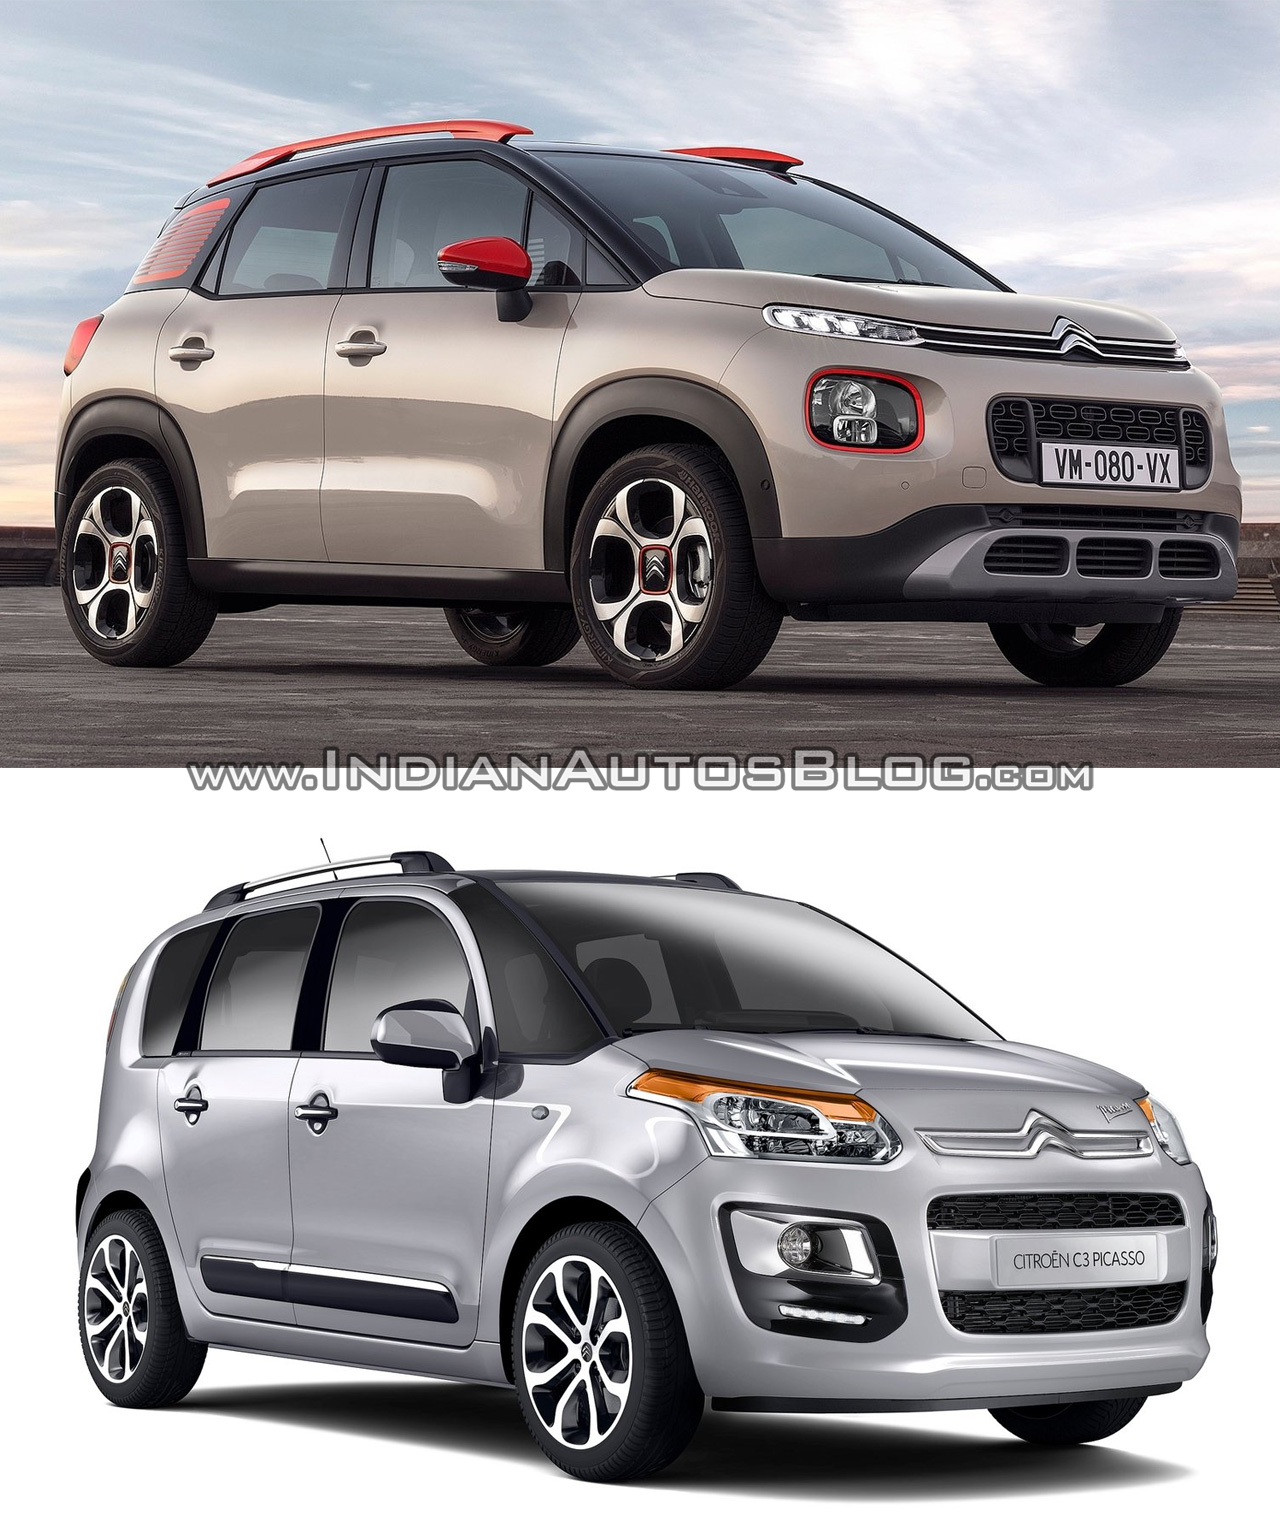 citroen c3 aircross vs citroen c3 picasso old vs new. Black Bedroom Furniture Sets. Home Design Ideas